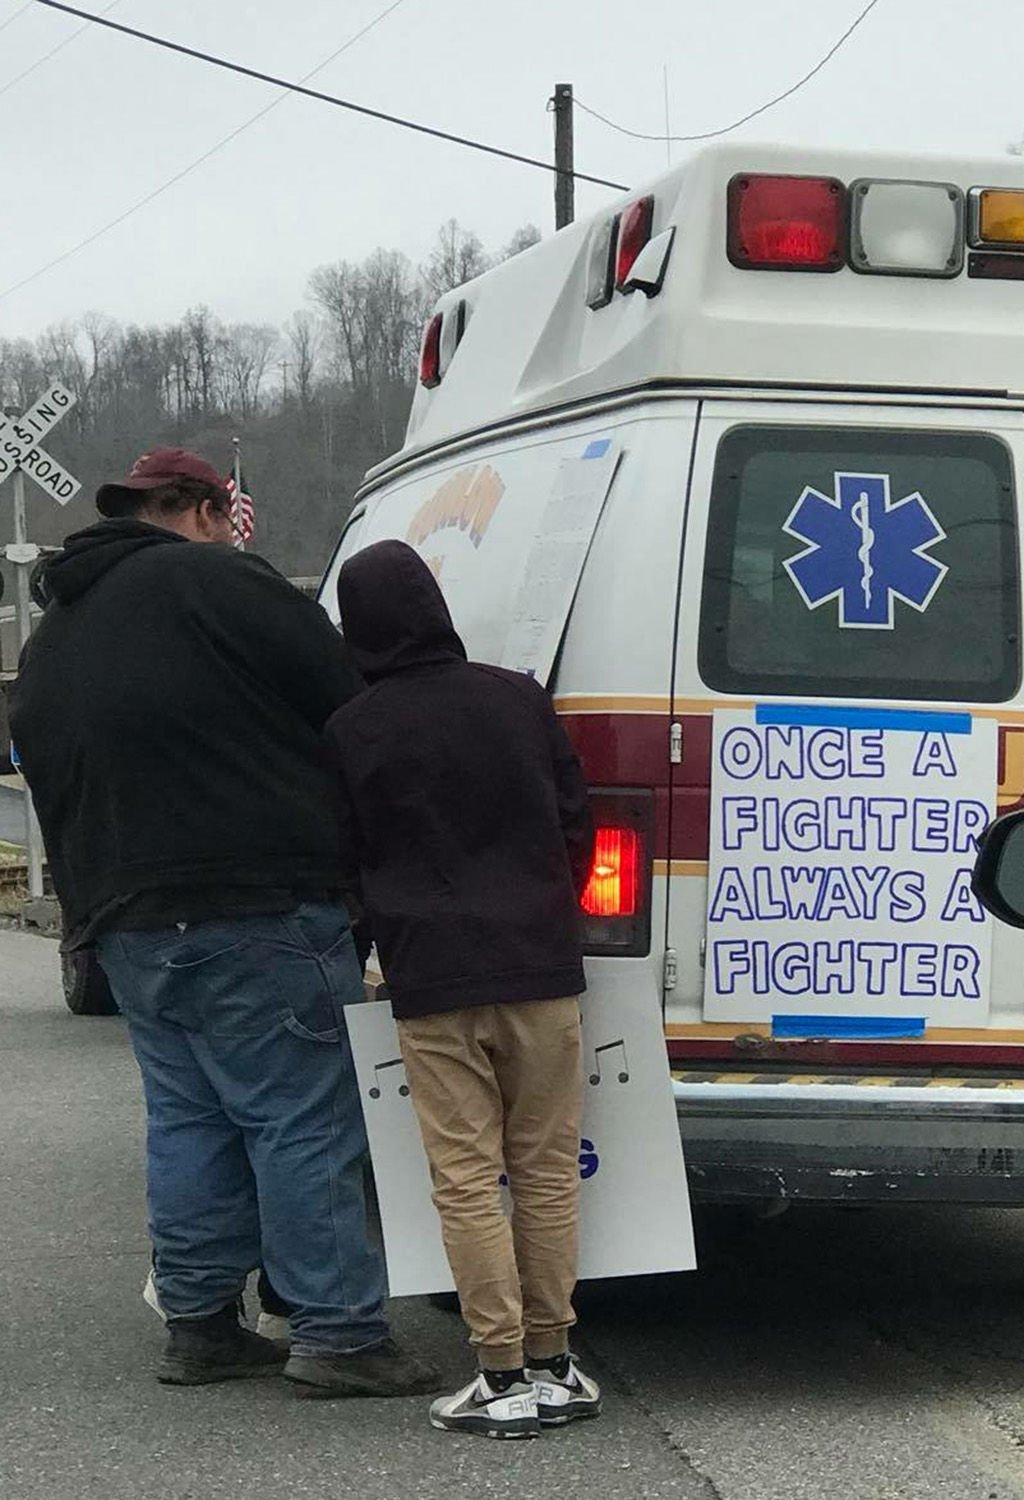 Wayne community gives warm welcome home to injured teen | Wc